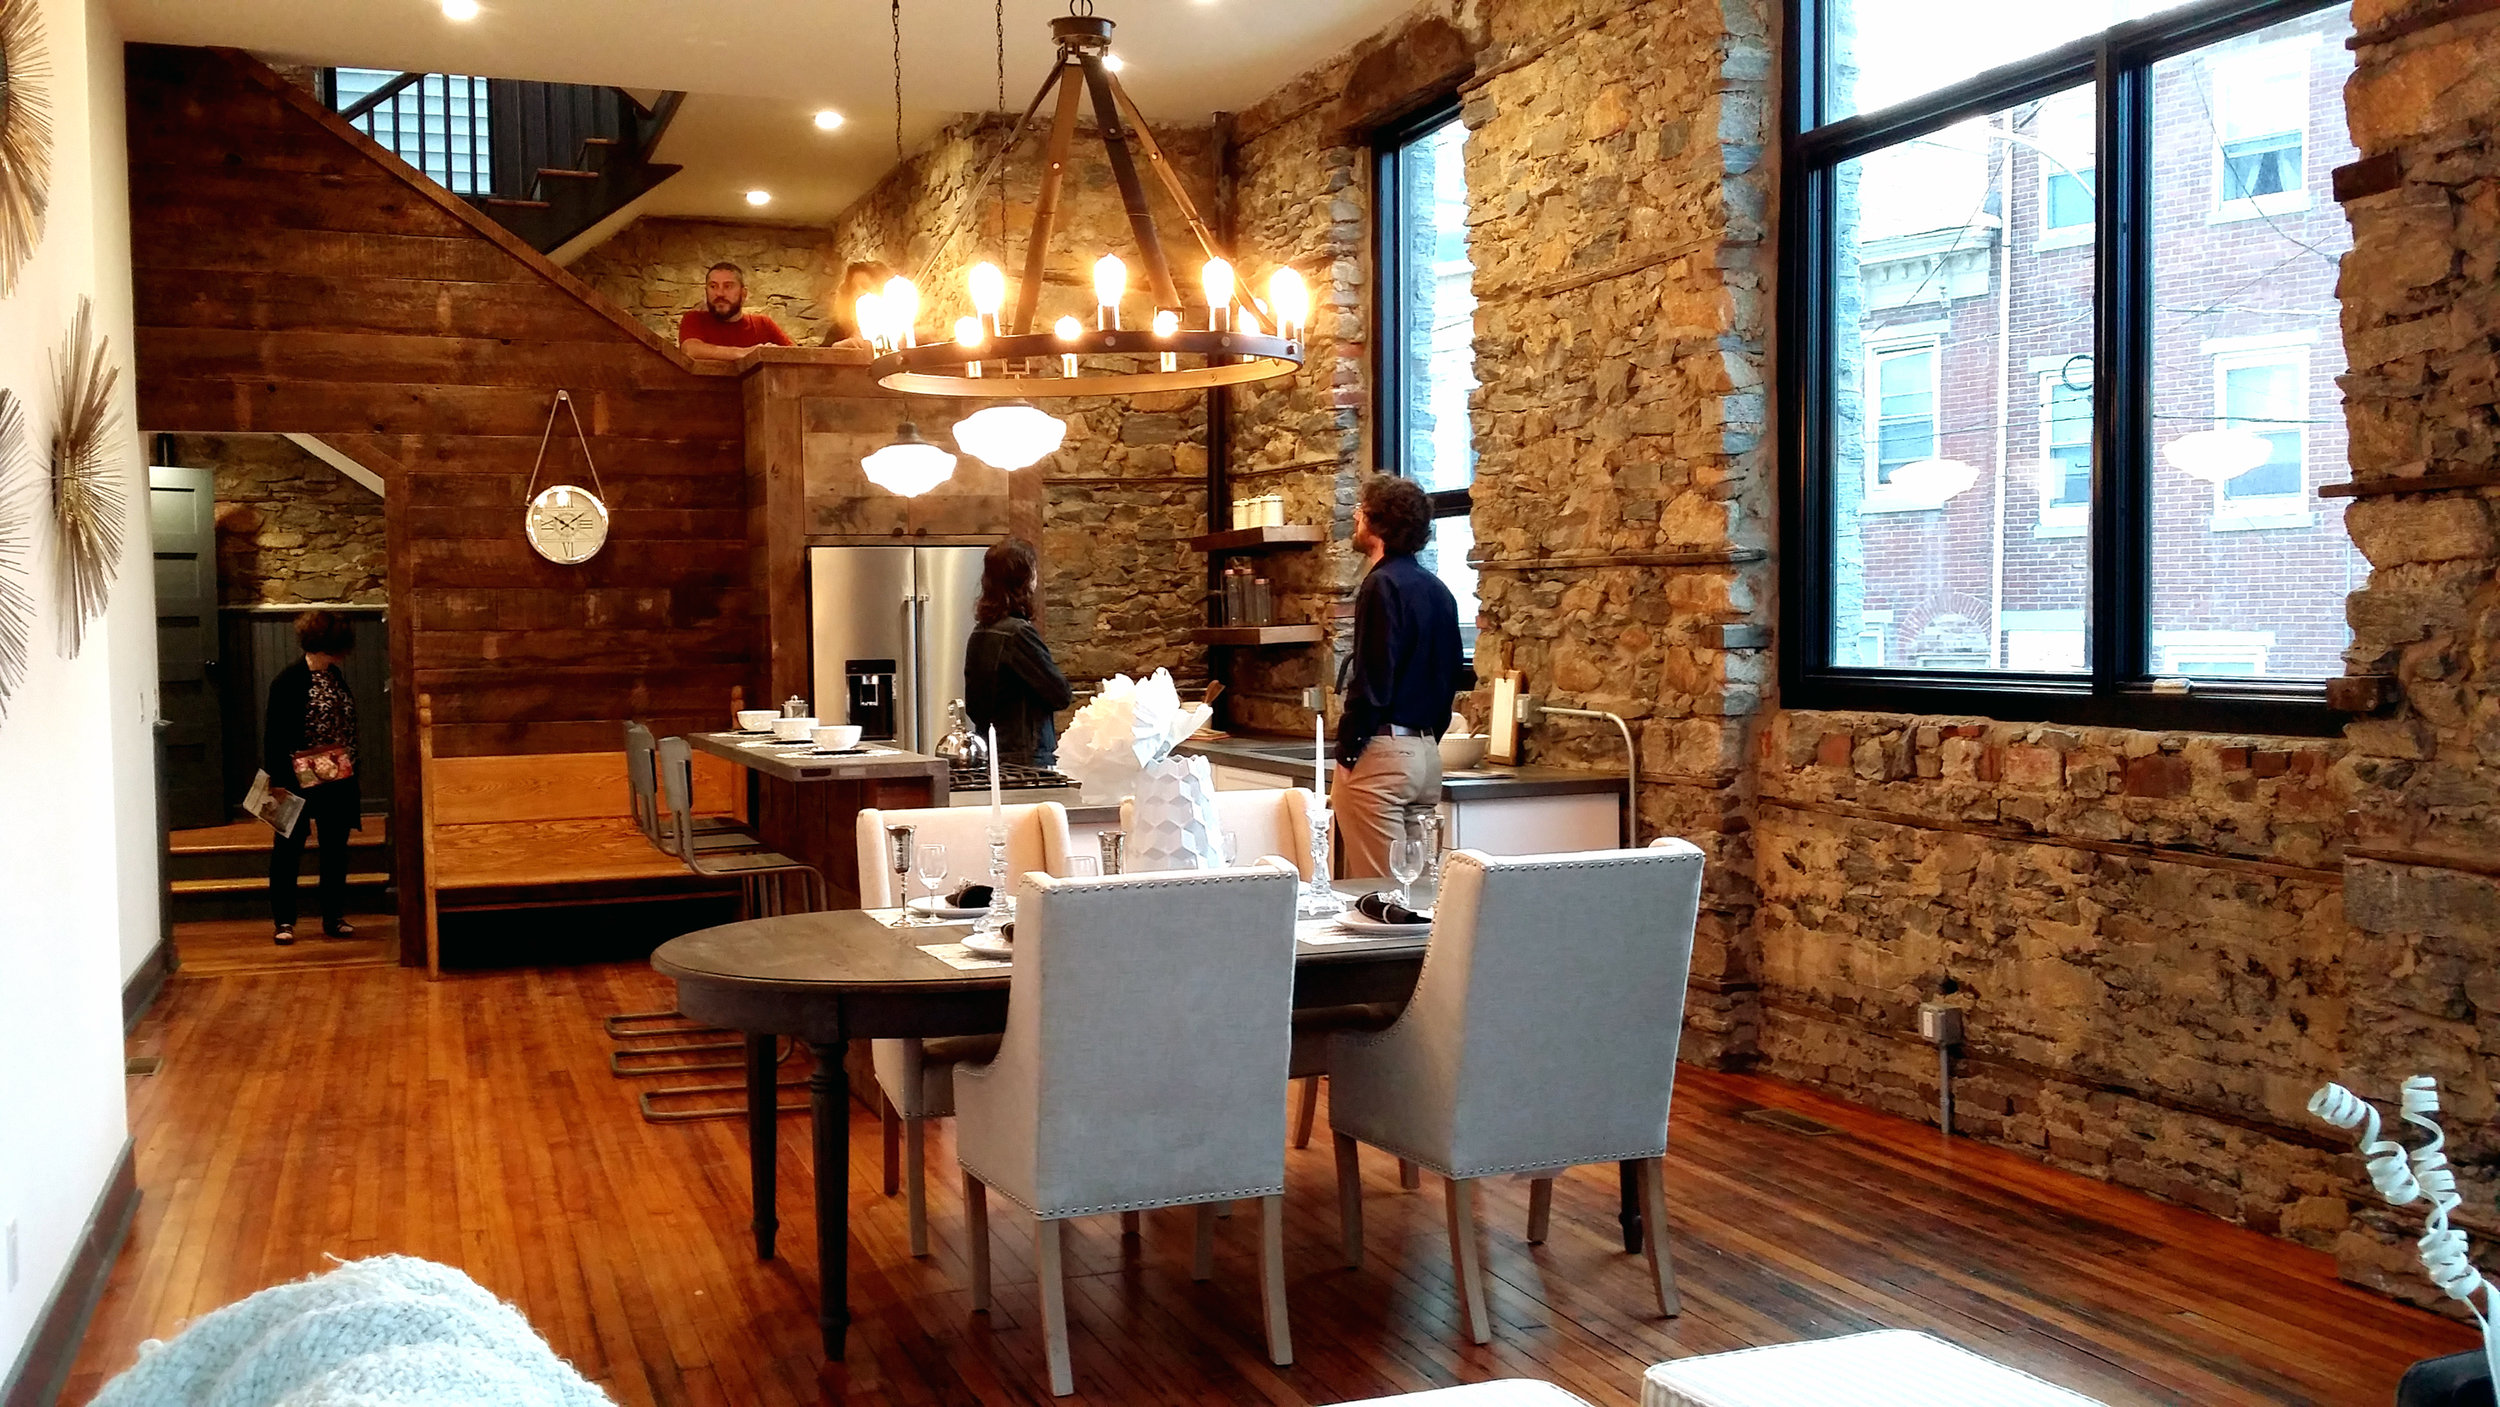 This is the main floor, with kitchen, dining, and living space. The original stone walls are exposed, and the wood floors are original. The wood paneling is salvaged from the original structure.